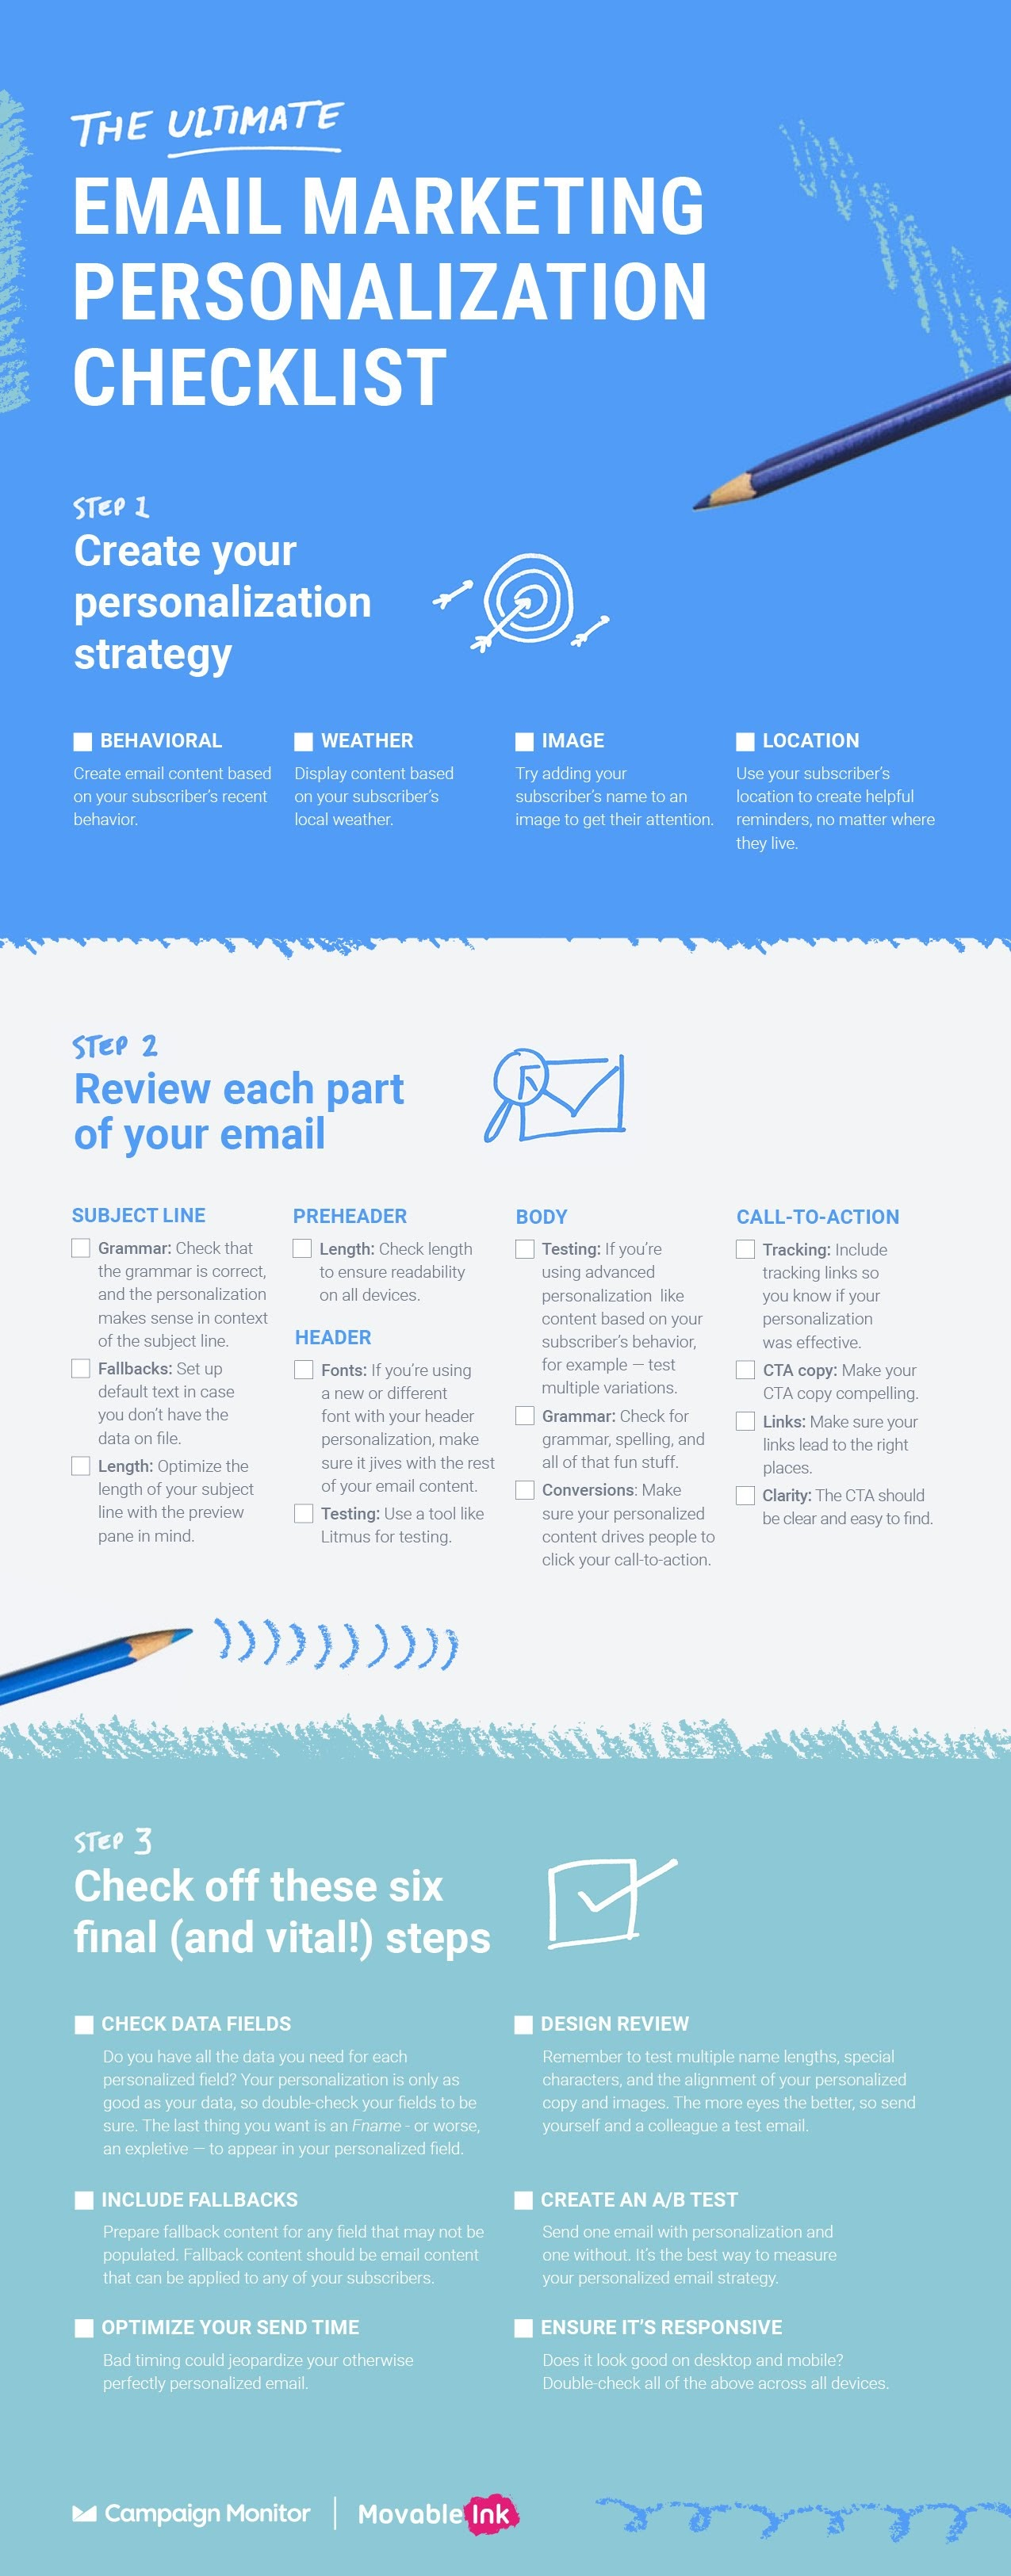 The Ultimate Email Marketing Personalization Checklist - #infographic